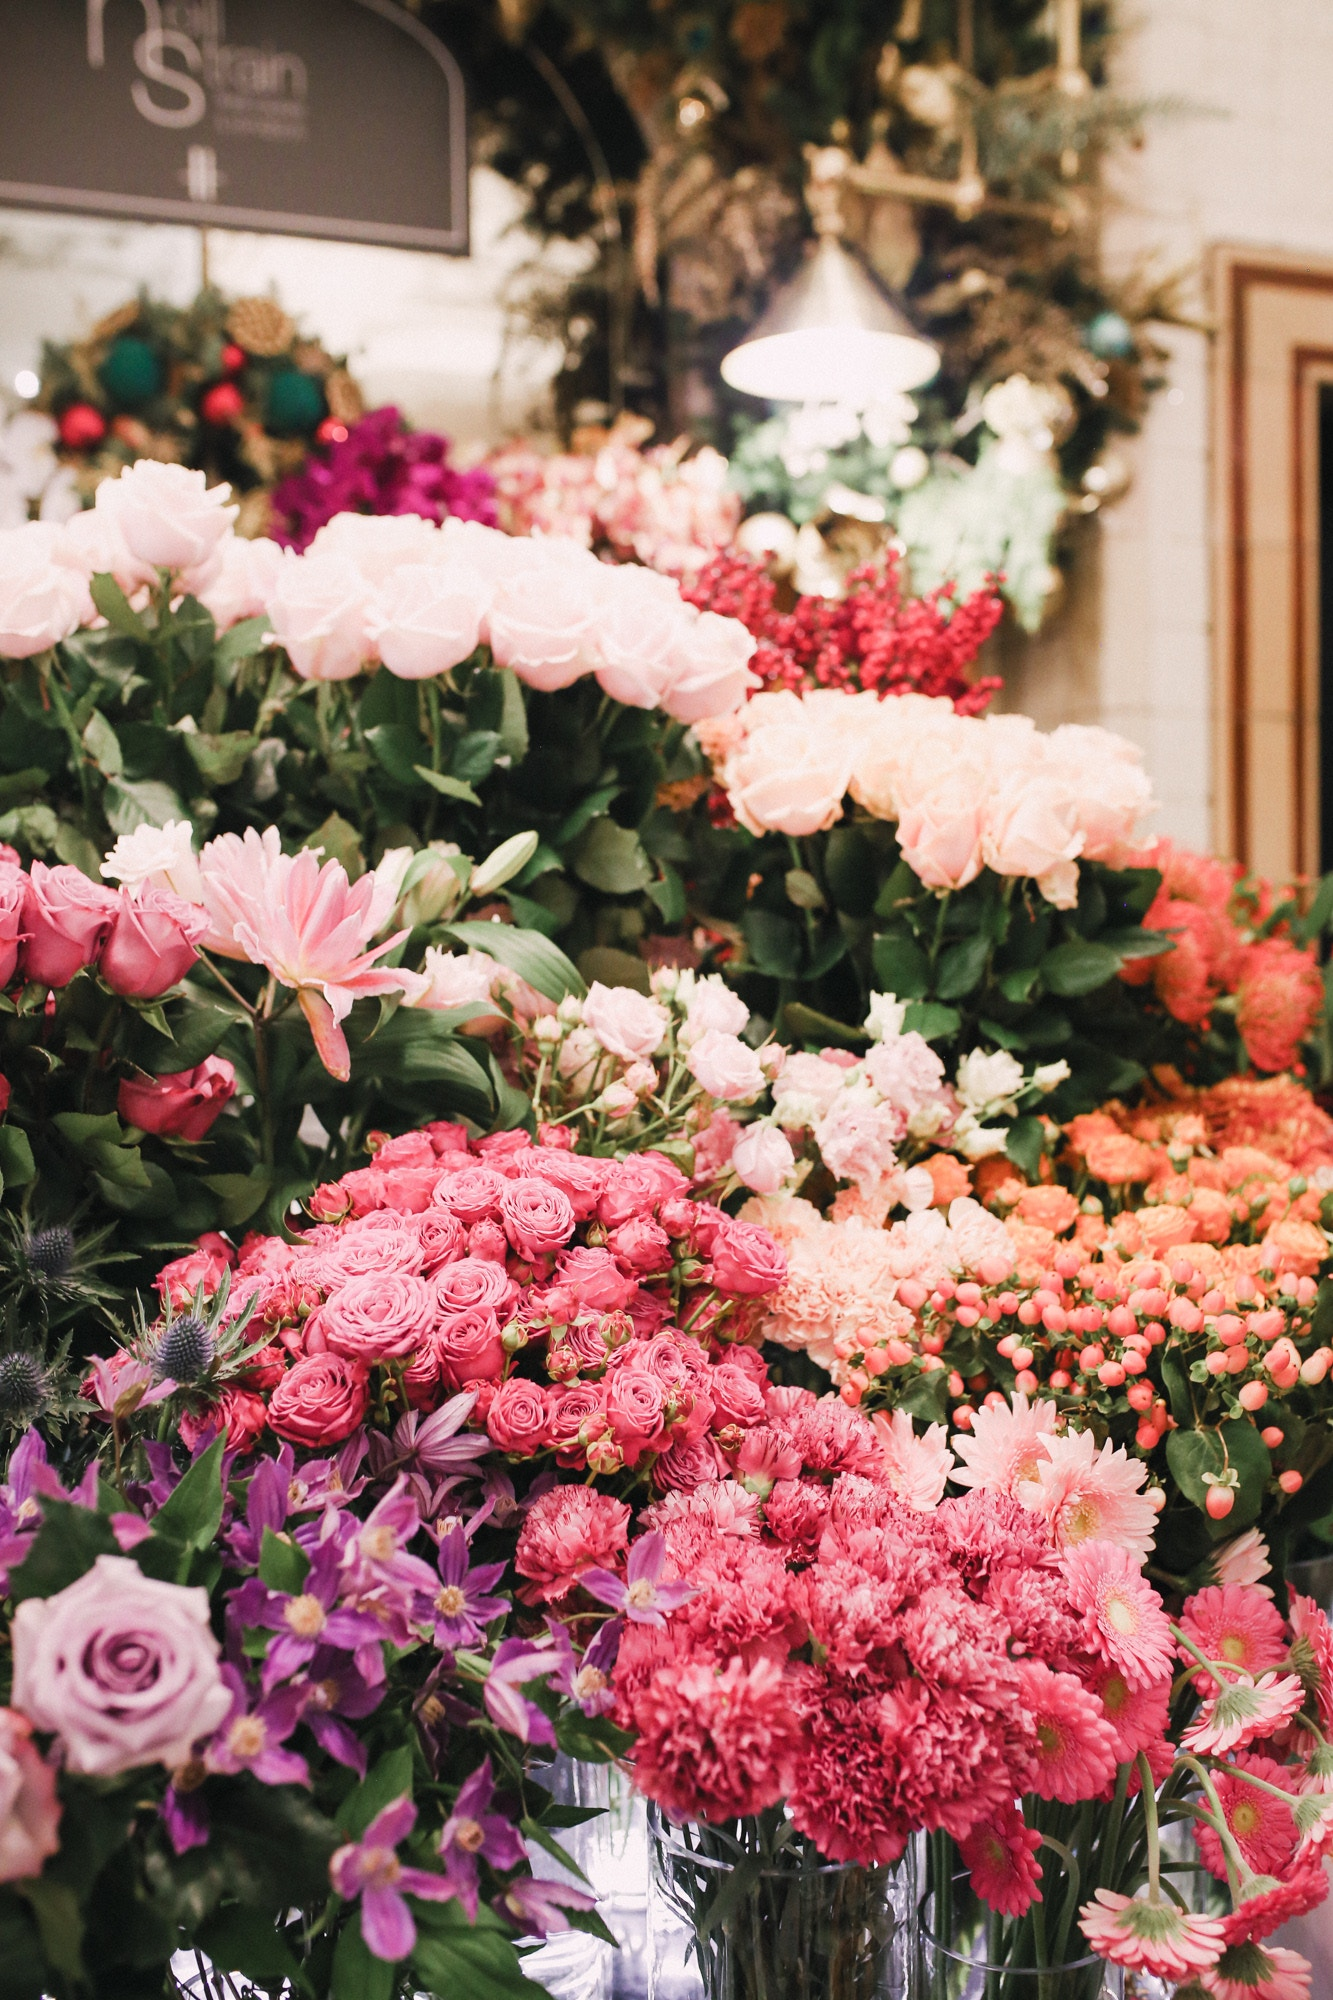 Florist at Harrod's in London